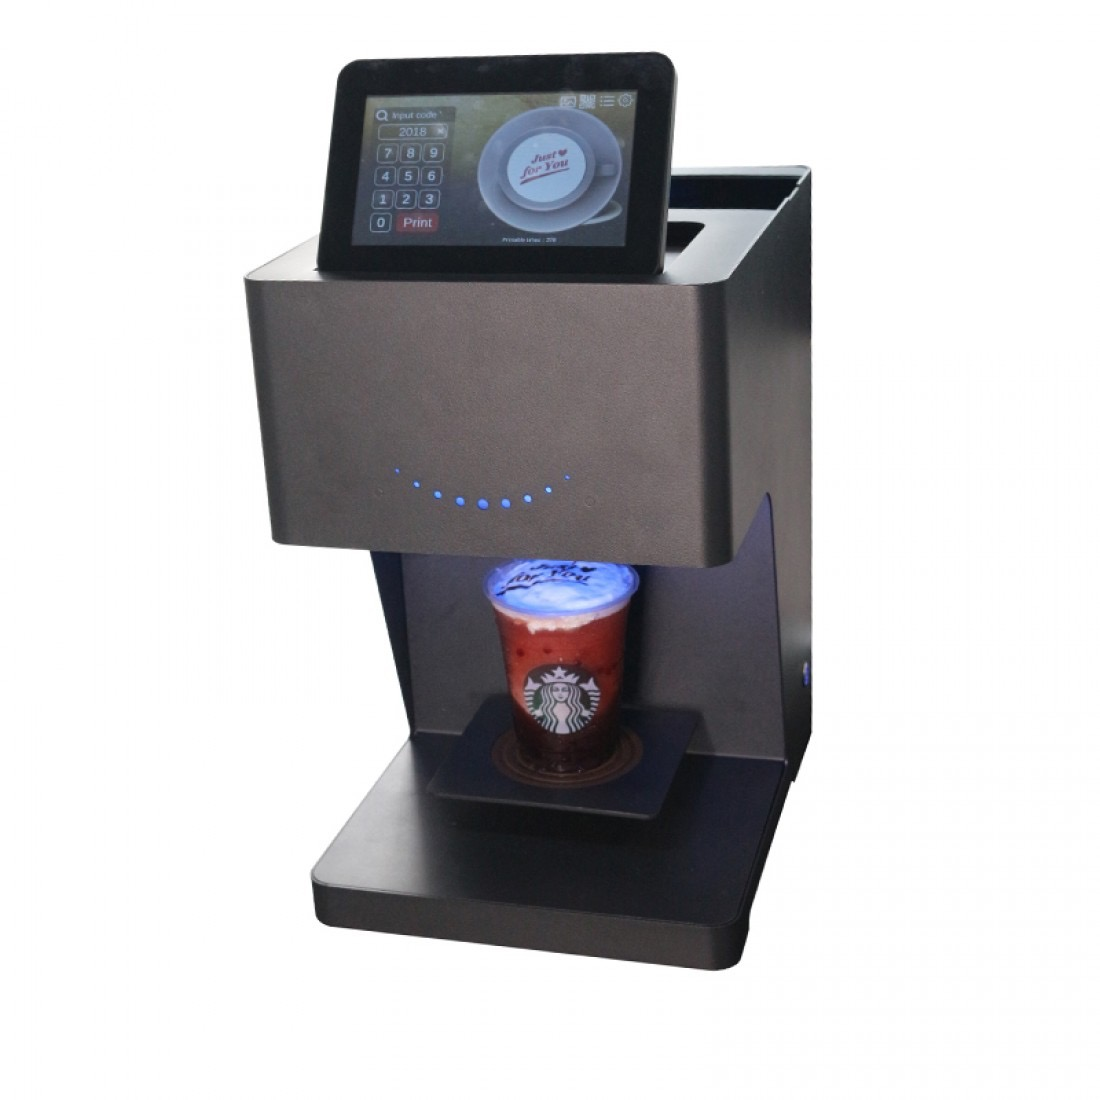 GNFEI Technology Co., Ltd Presents Several Modern Coffee Printers To Allow People Customize Their Beverages Easily